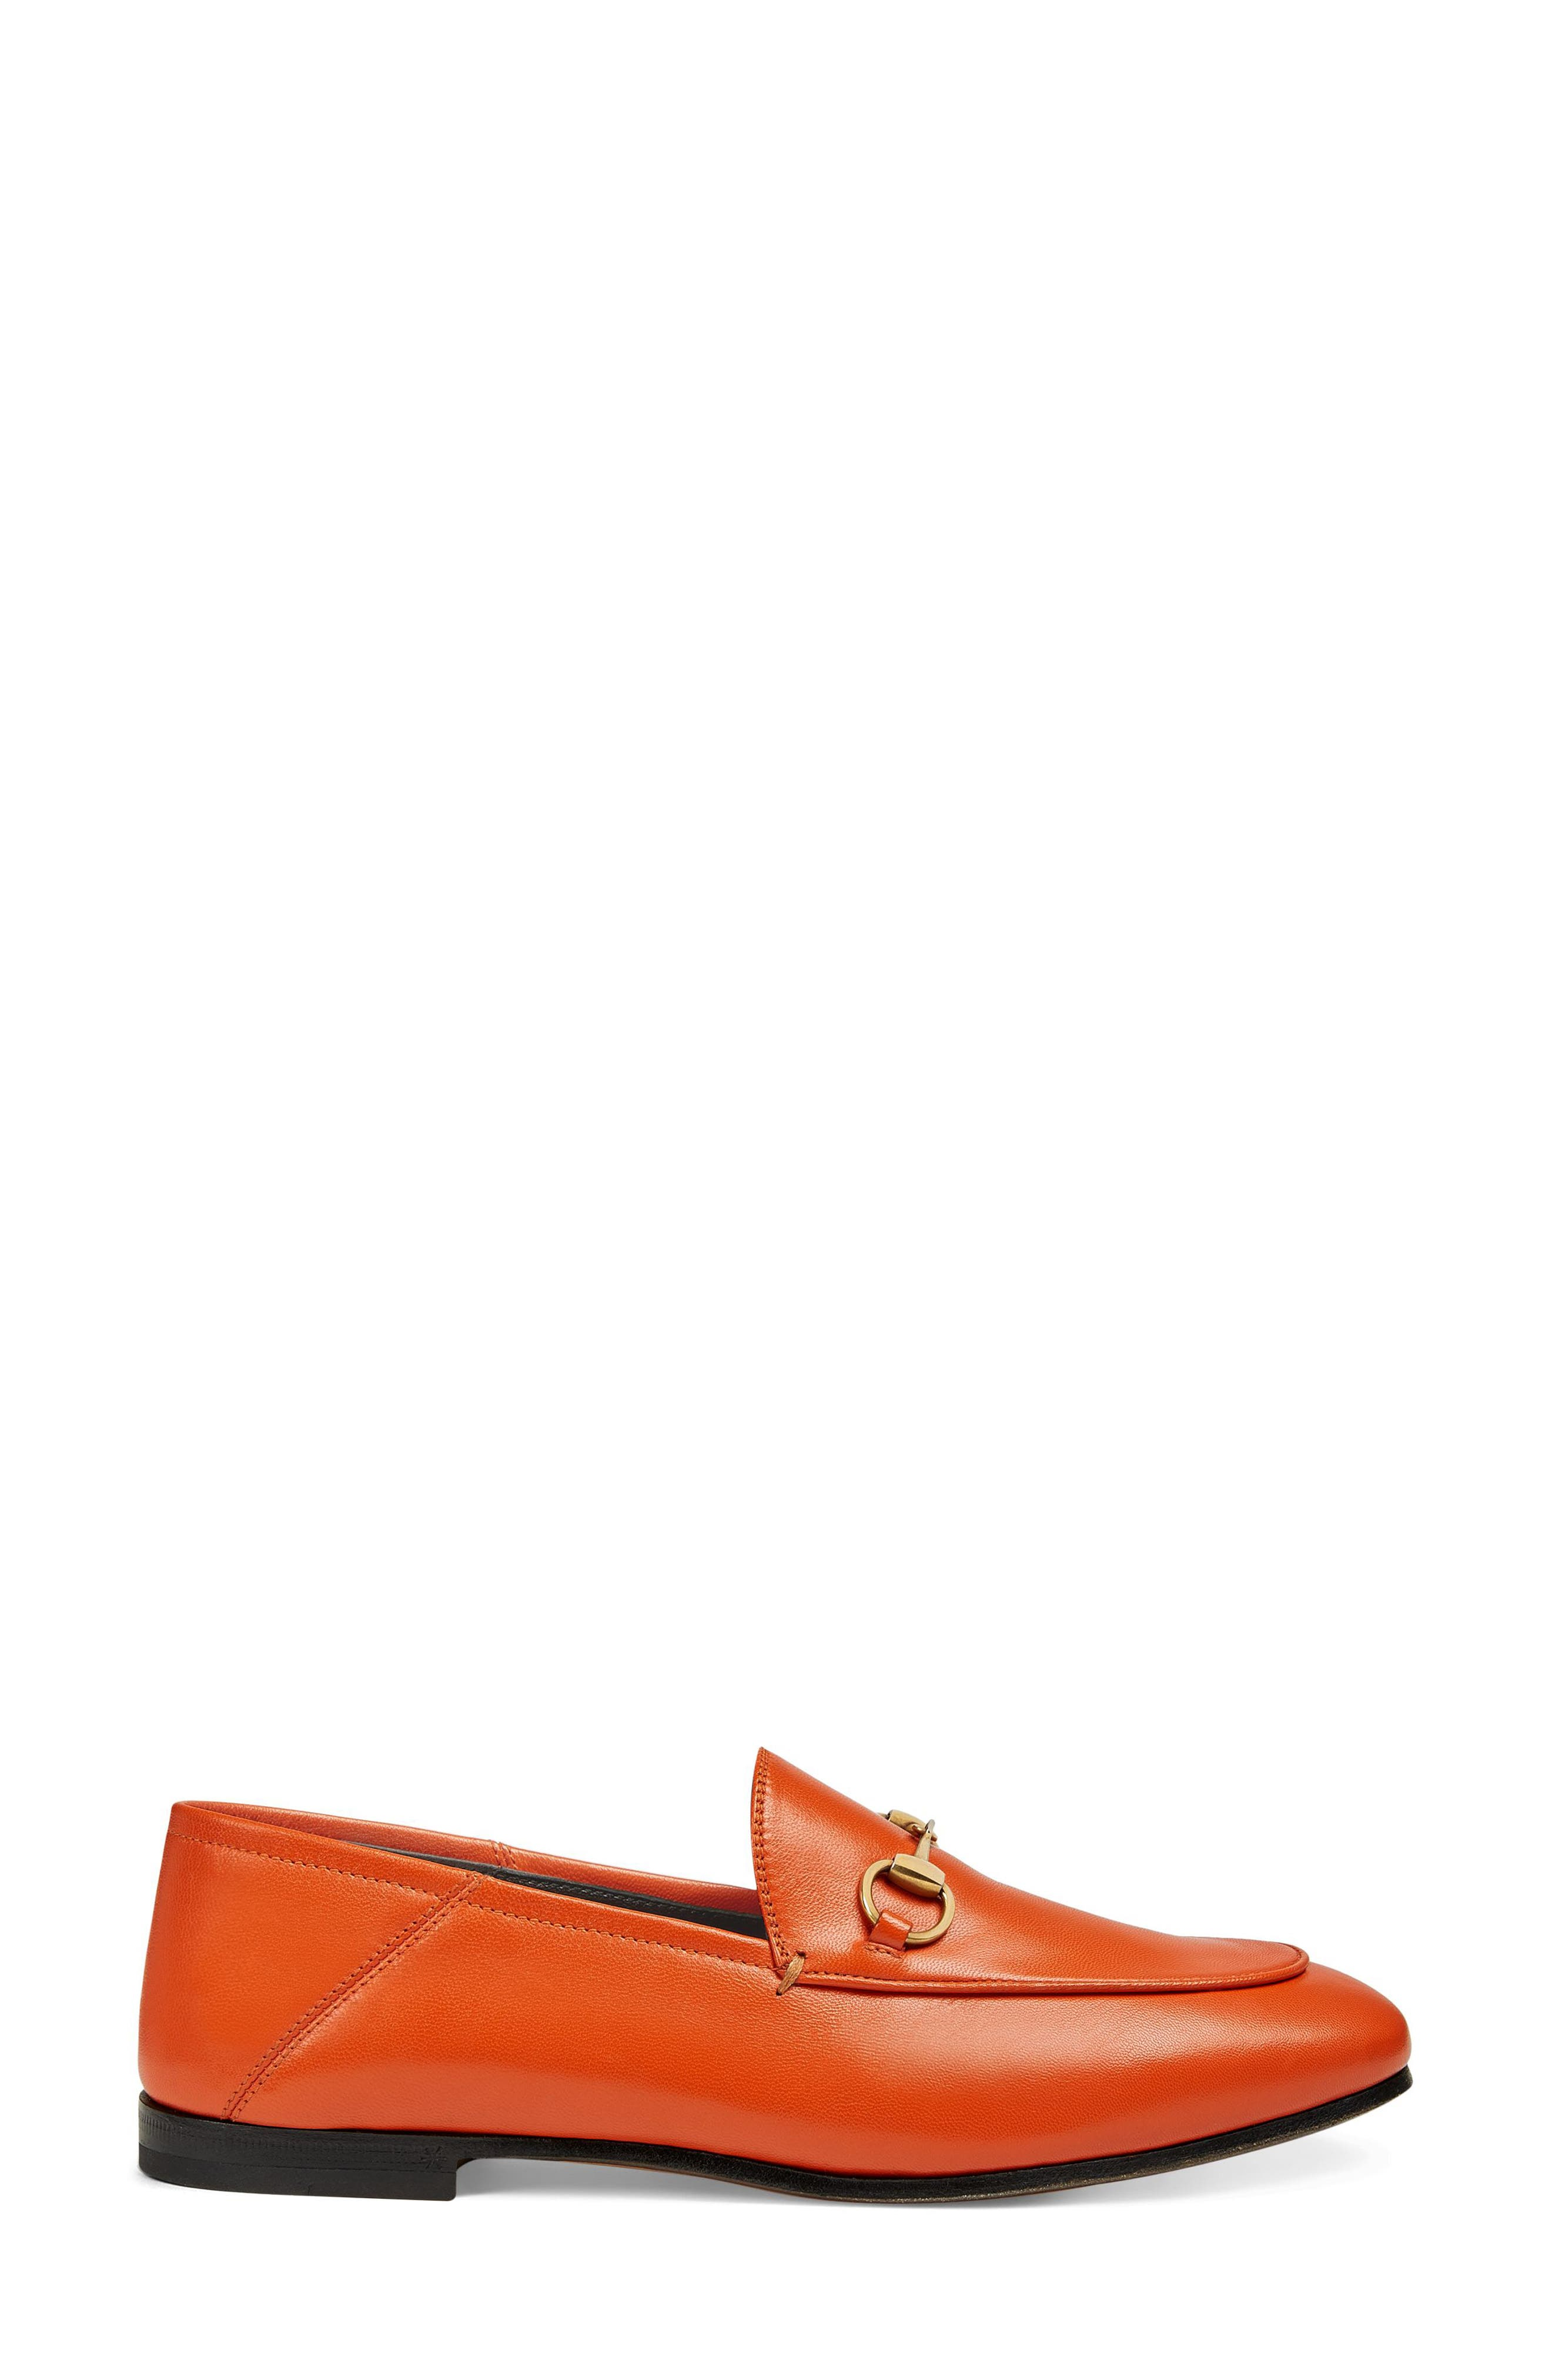 Brixton Convertible Loafer,                             Alternate thumbnail 2, color,                             DEEP ORANGE